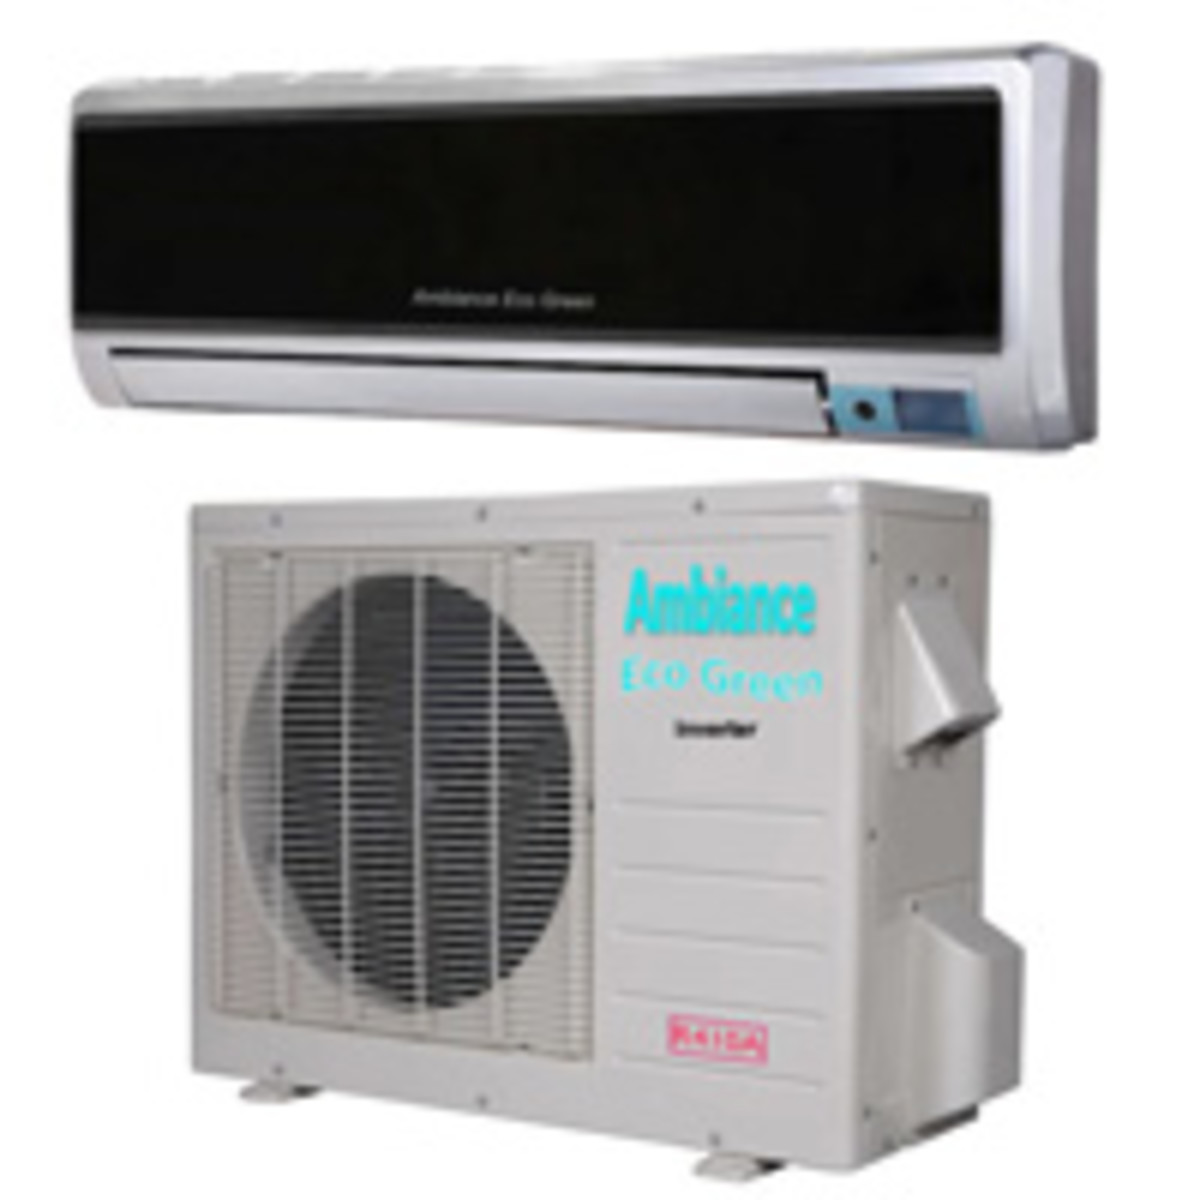 Ambiance Eco Green, A Smarter, More Efficient Air Conditioning System For Homes.